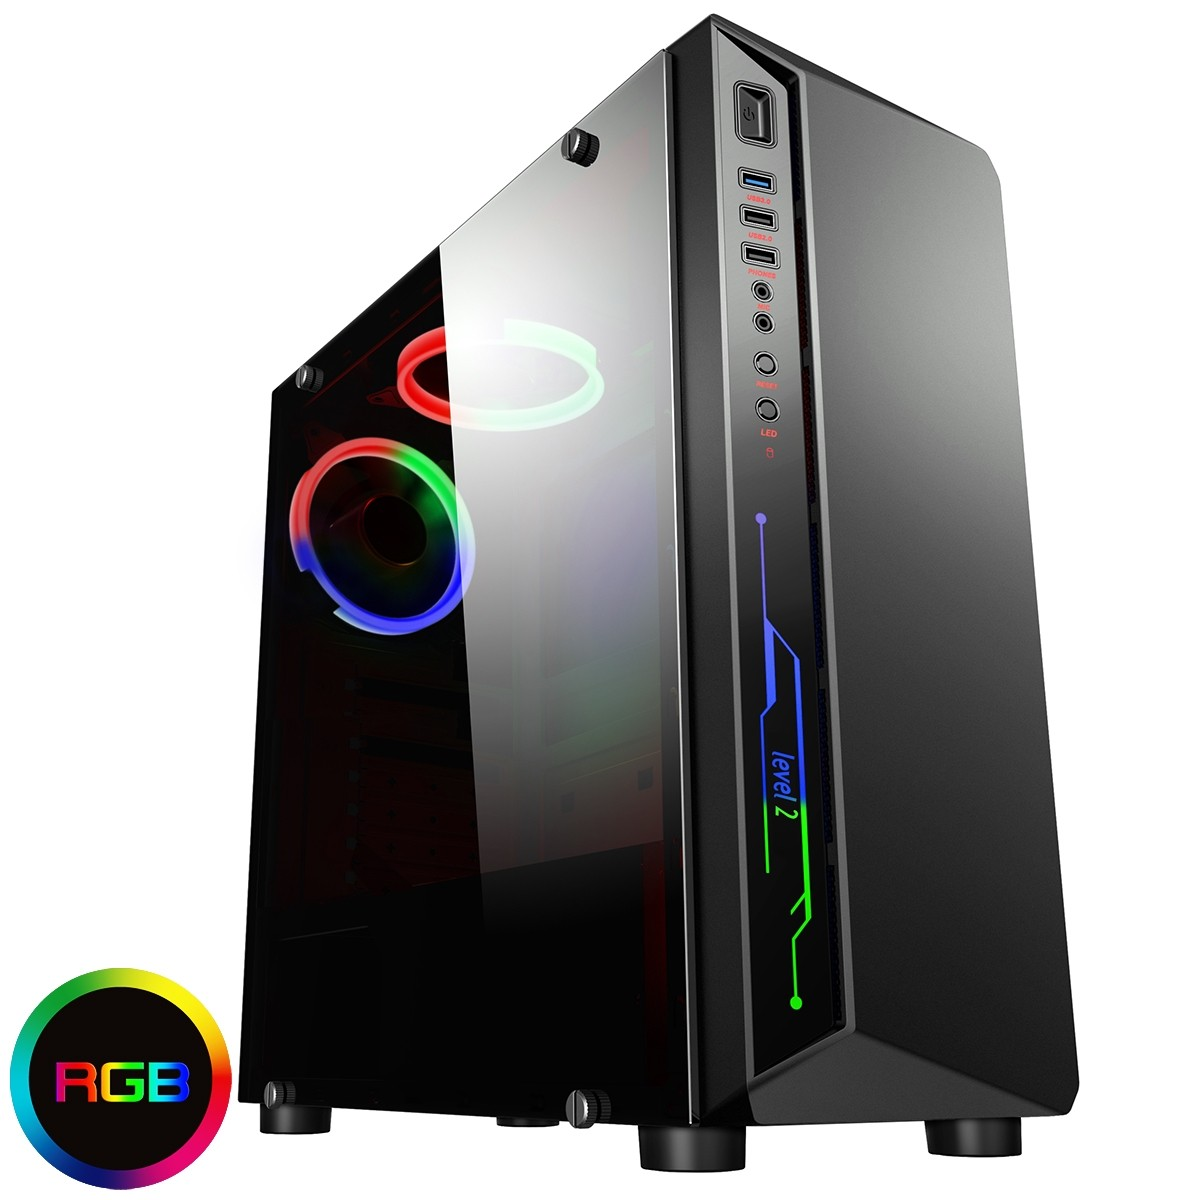 6 Core FX Gaming PC with 8GB 1TB + 4GB 1650 Graphics